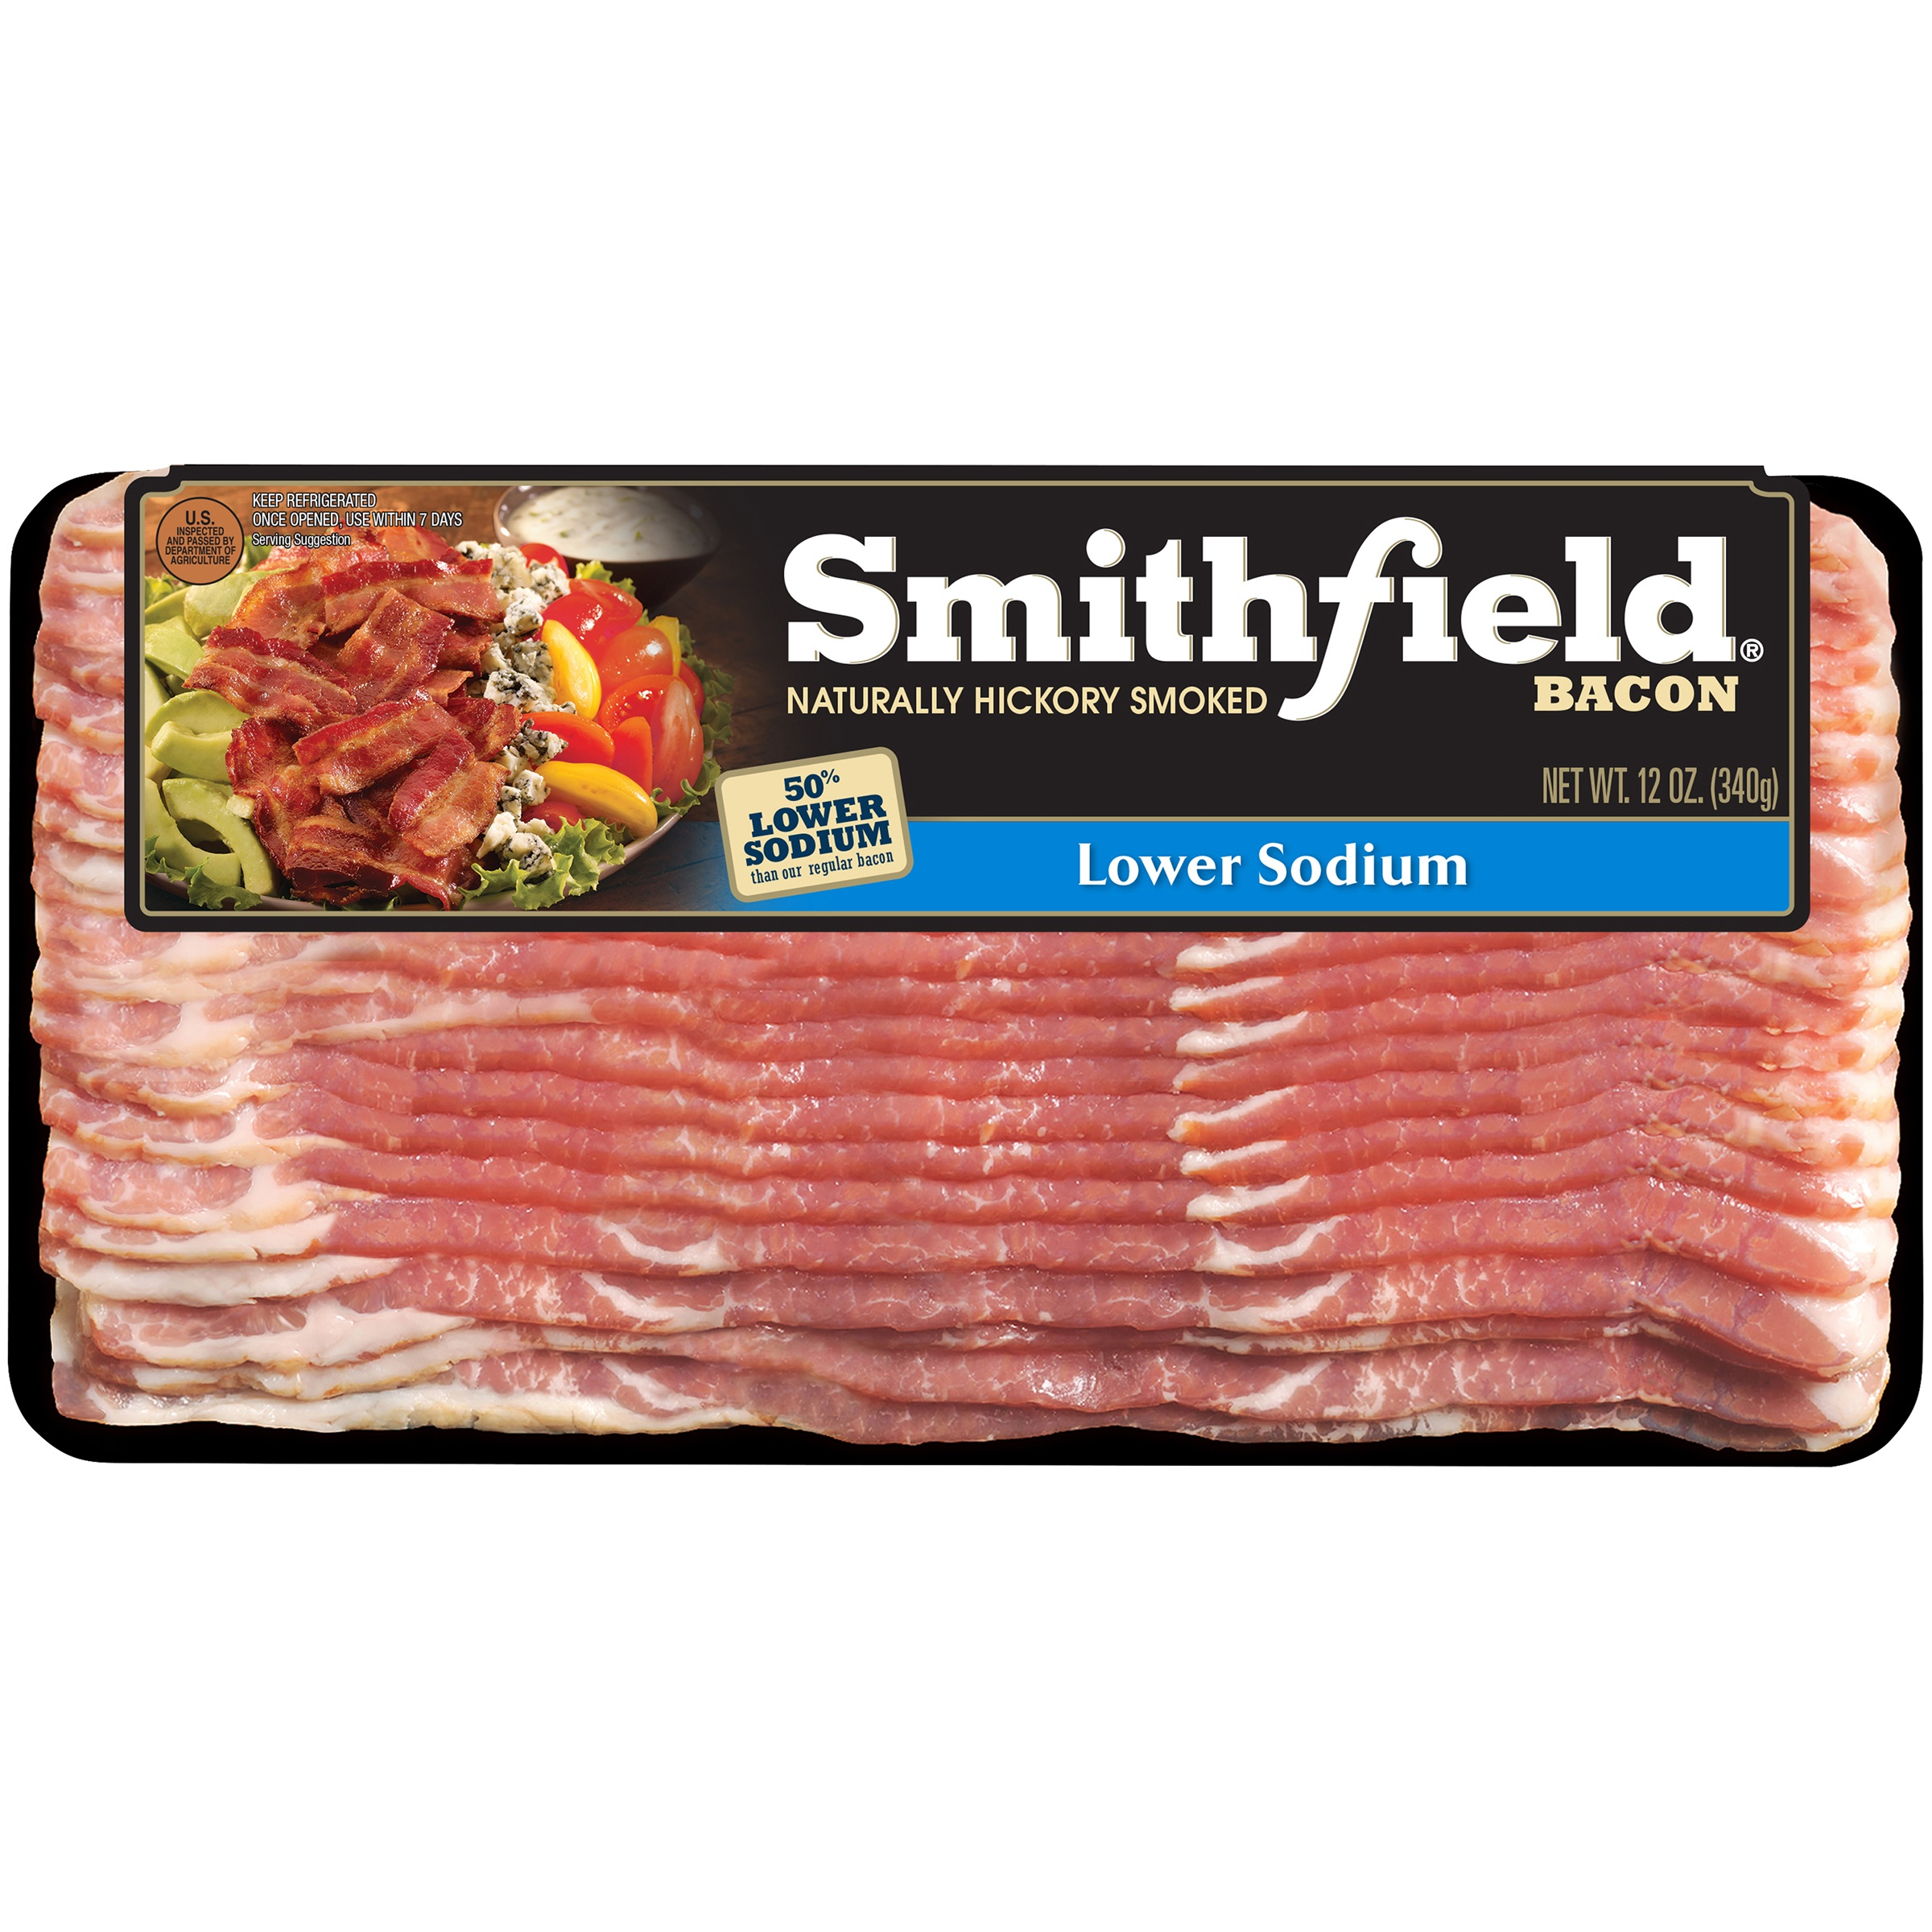 Smithfield® Naturally Hickory Smoked Lower Sodium Bacon 12 oz. Package